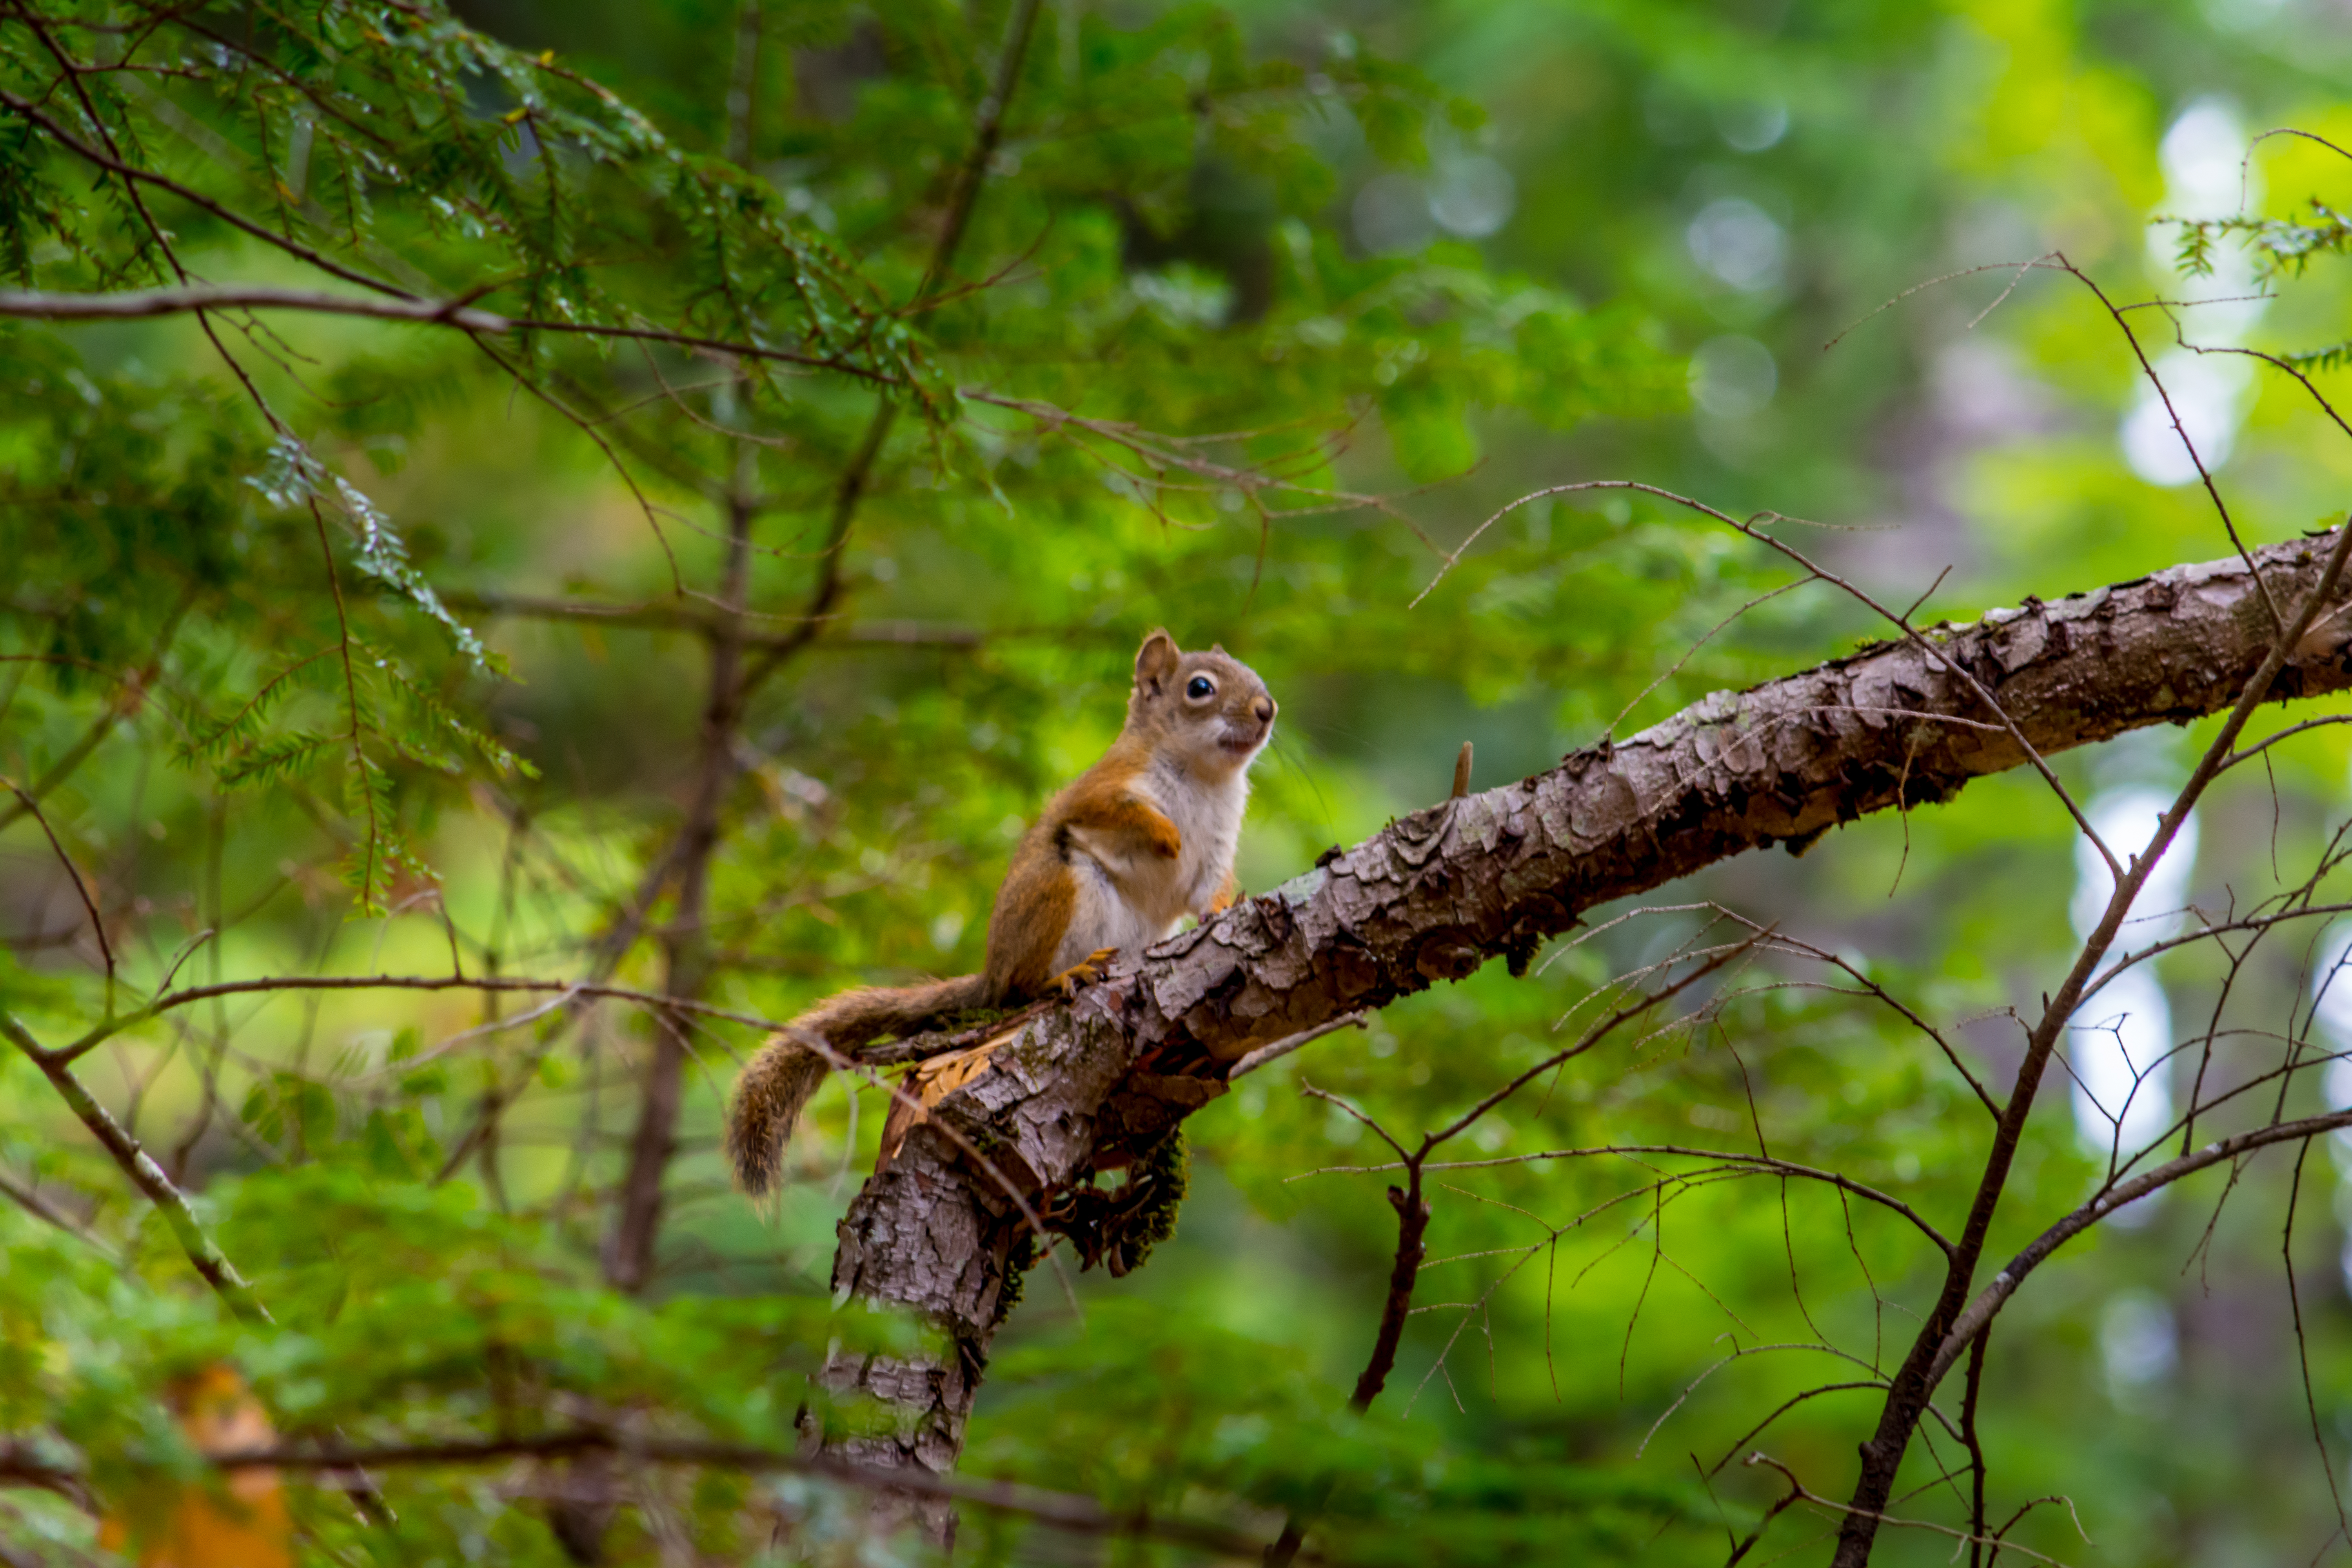 68350 download wallpaper Animals, Squirrel, Rodent, Nice, Sweetheart, Animal, Branch screensavers and pictures for free